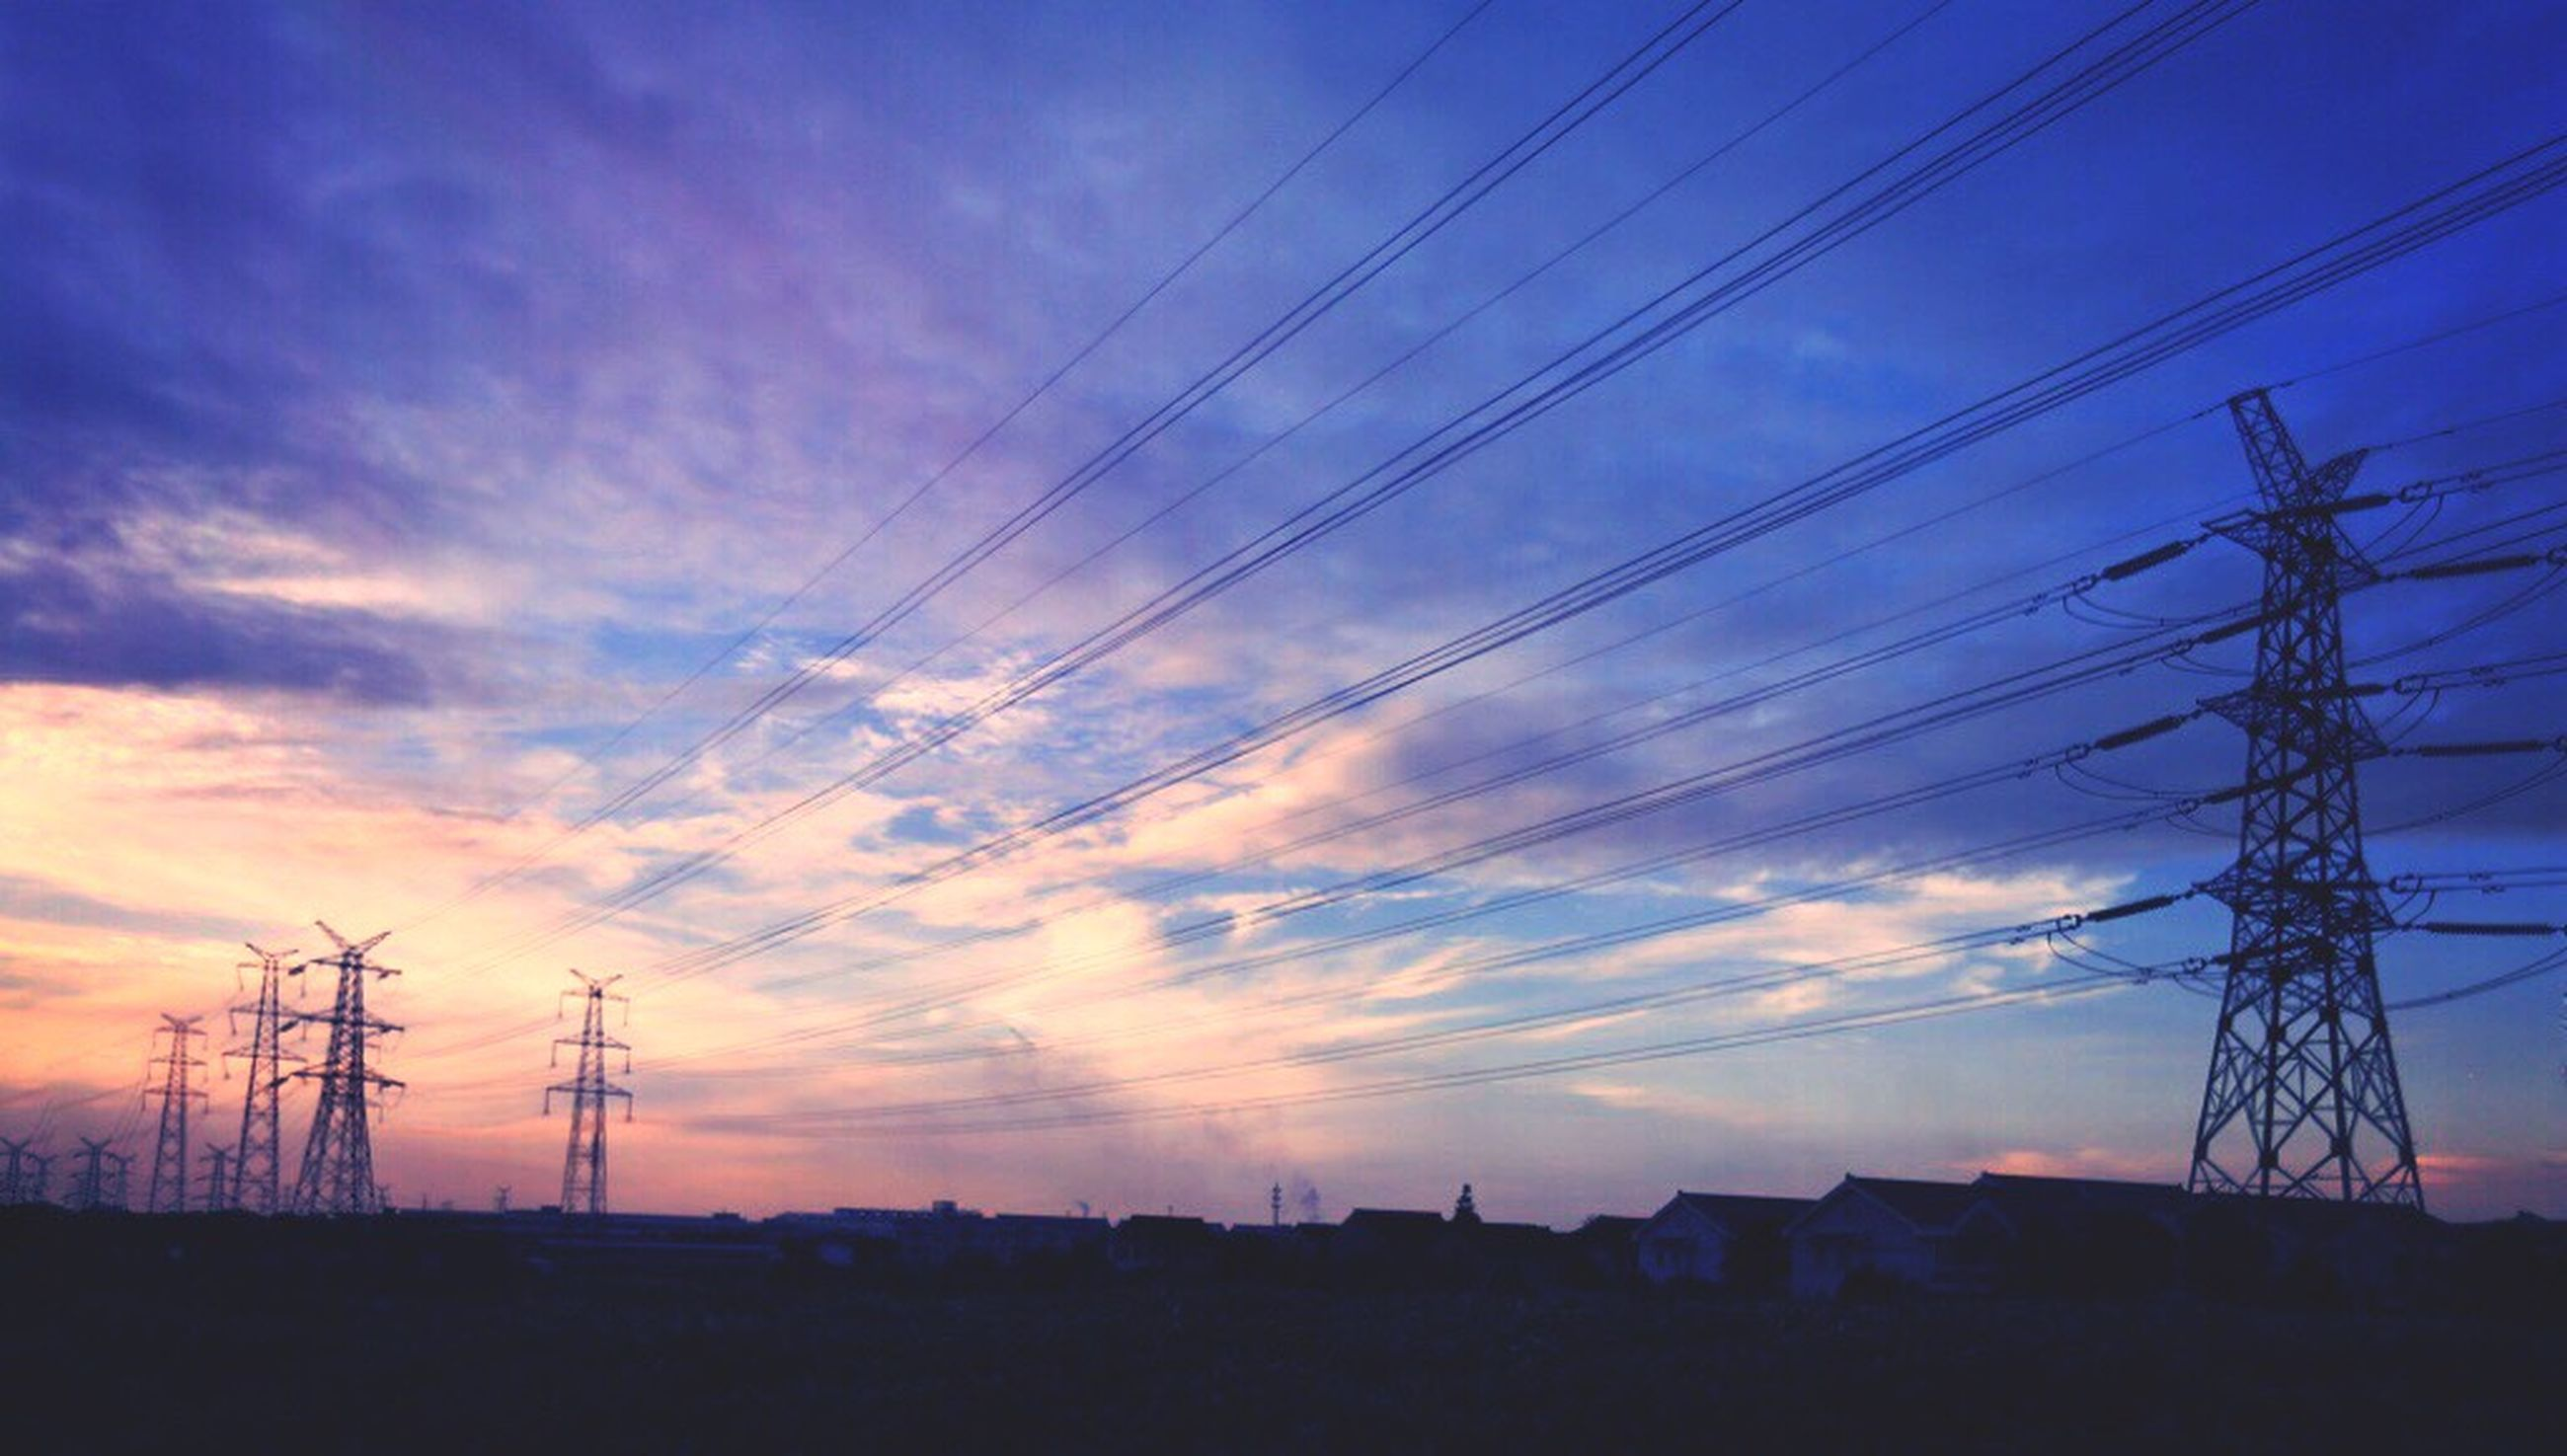 power line, electricity pylon, power supply, electricity, fuel and power generation, cable, sunset, connection, sky, low angle view, power cable, cloud - sky, cloud, no people, outdoors, nature, beauty in nature, scenics, tranquility, cloudy, tranquil scene, blue, landscape, dark